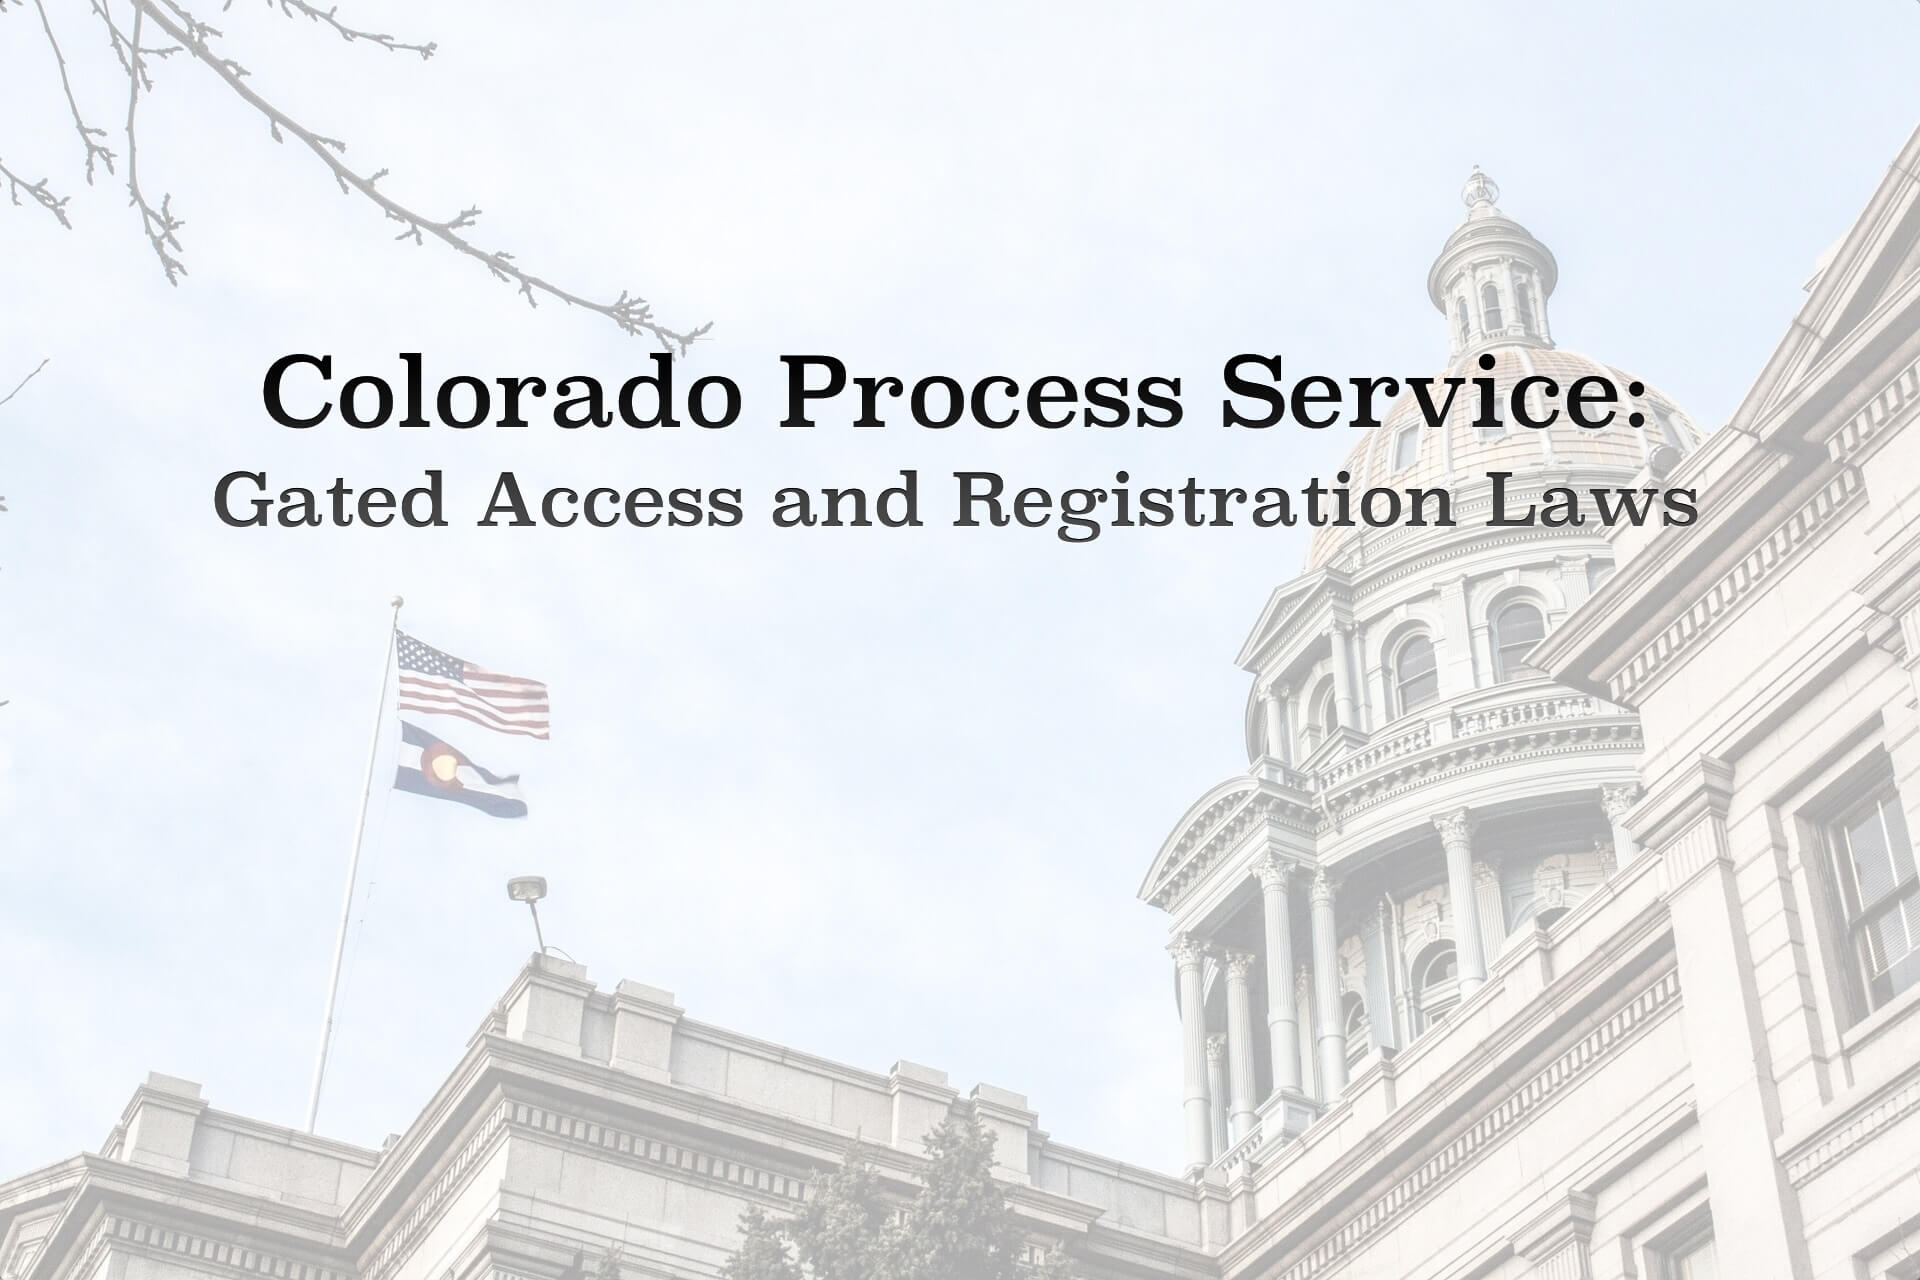 Colorado Process Service: Gated Access and Registration